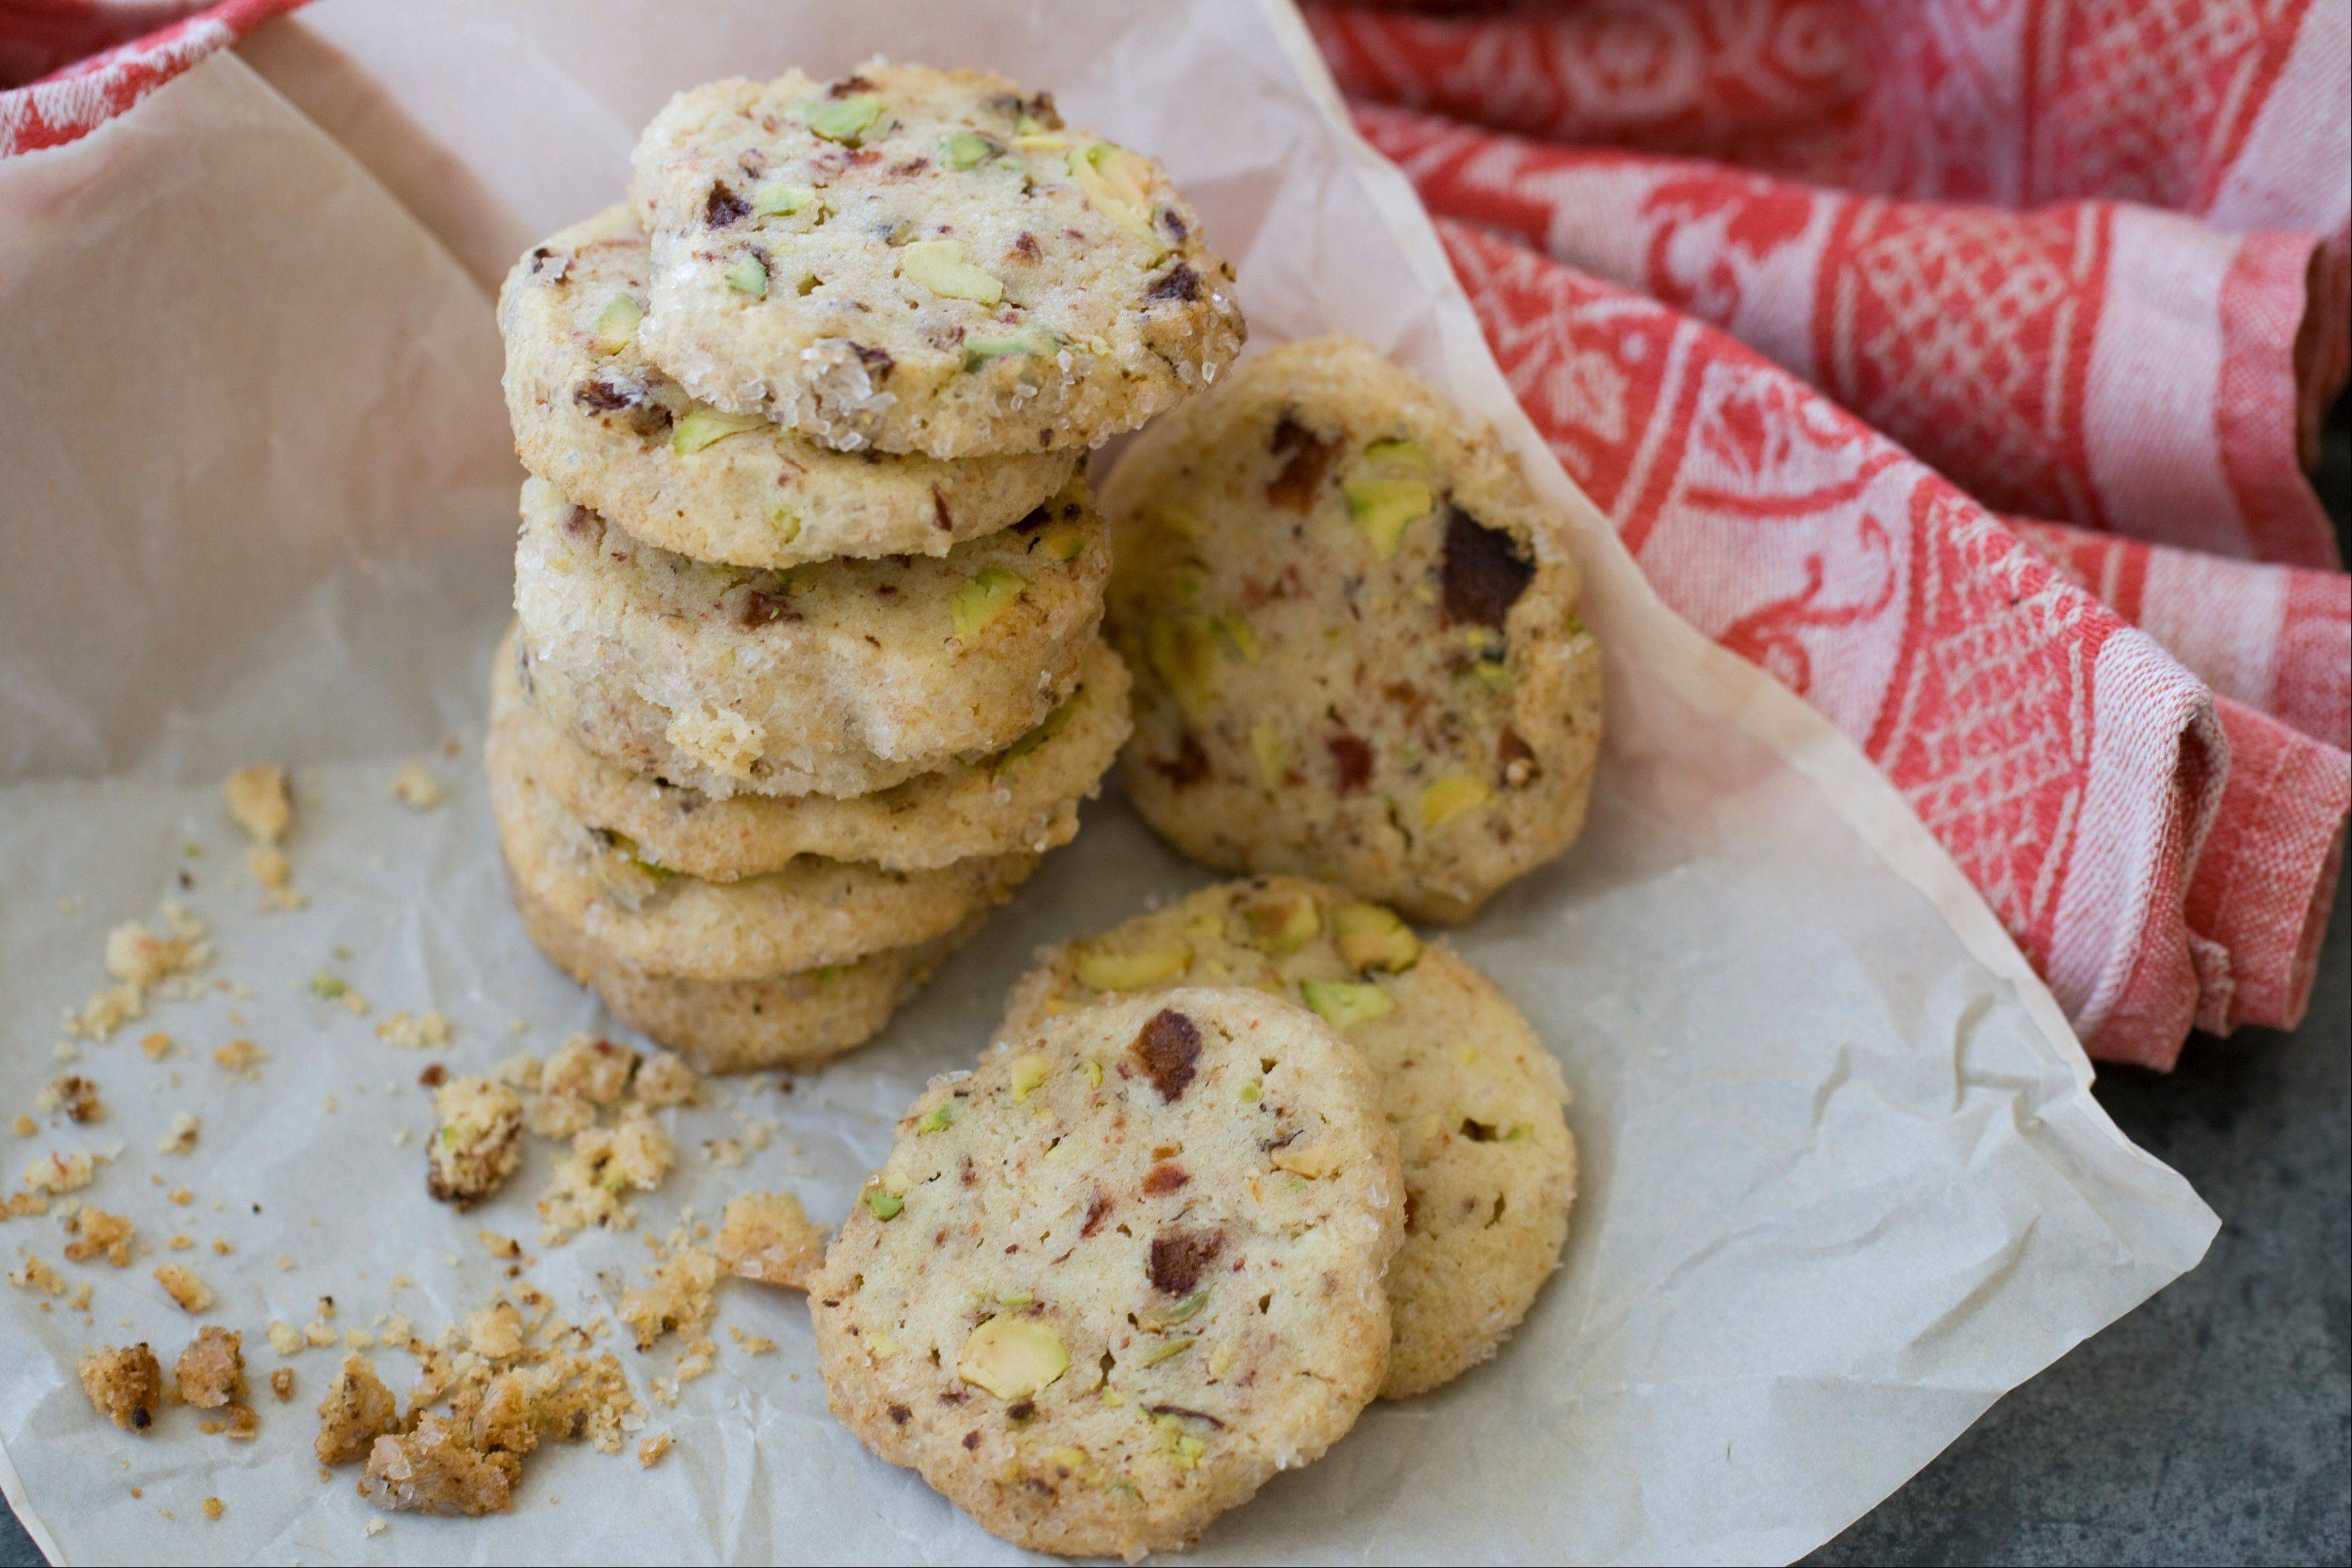 Stawberry Pistachio Icebox Cookies